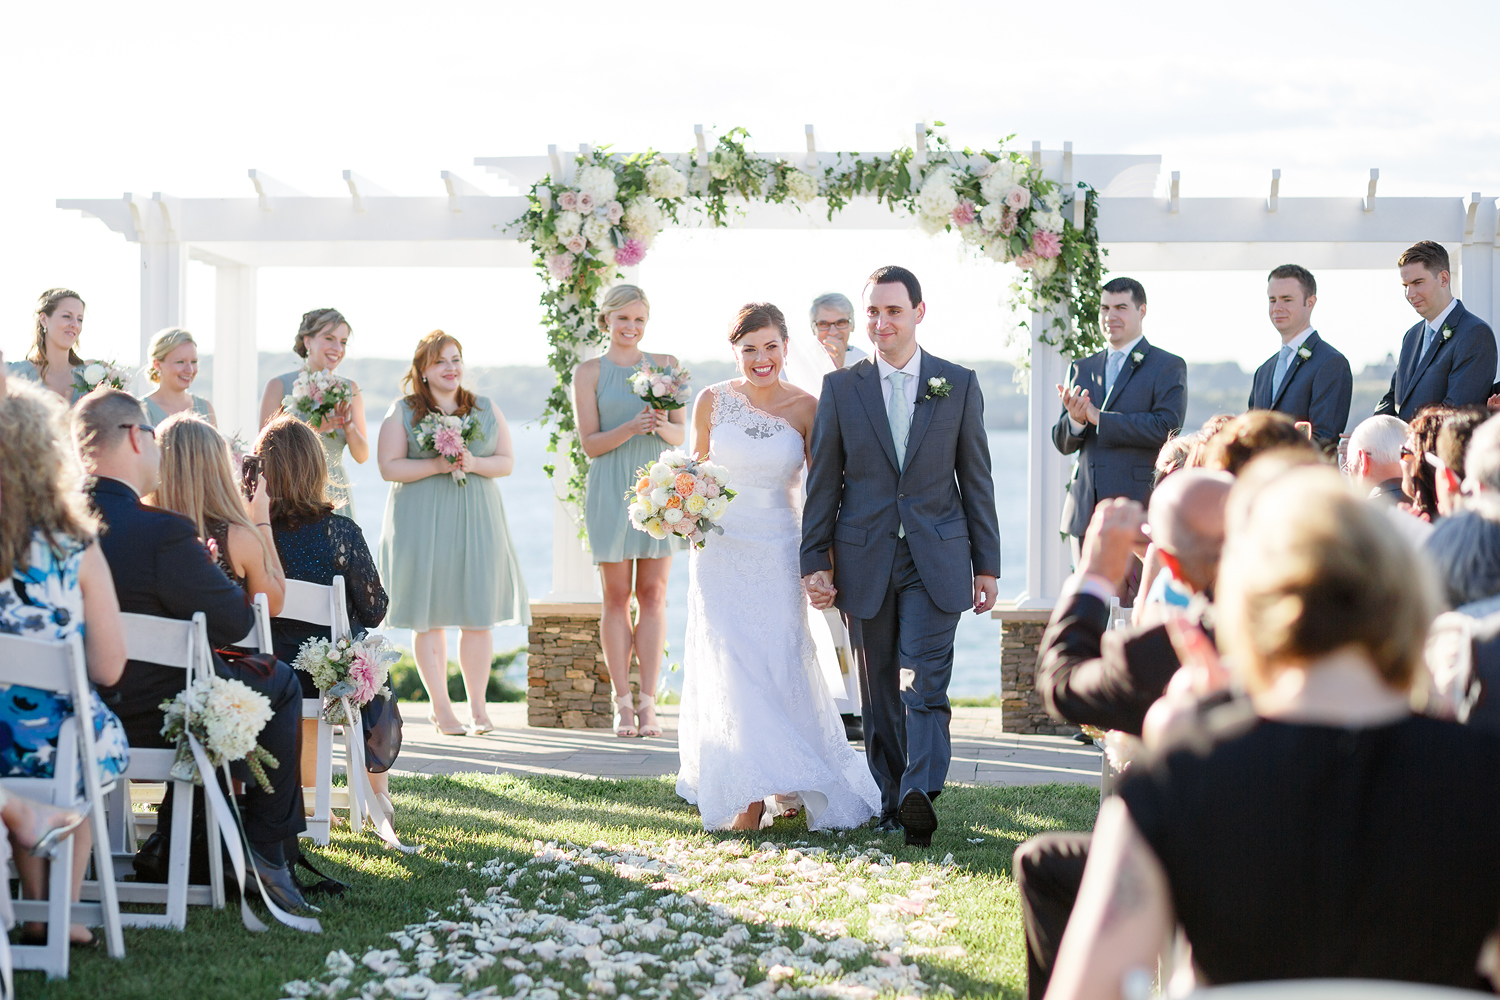 Wedding-Photographers-In-Newport-RI-02.JPG